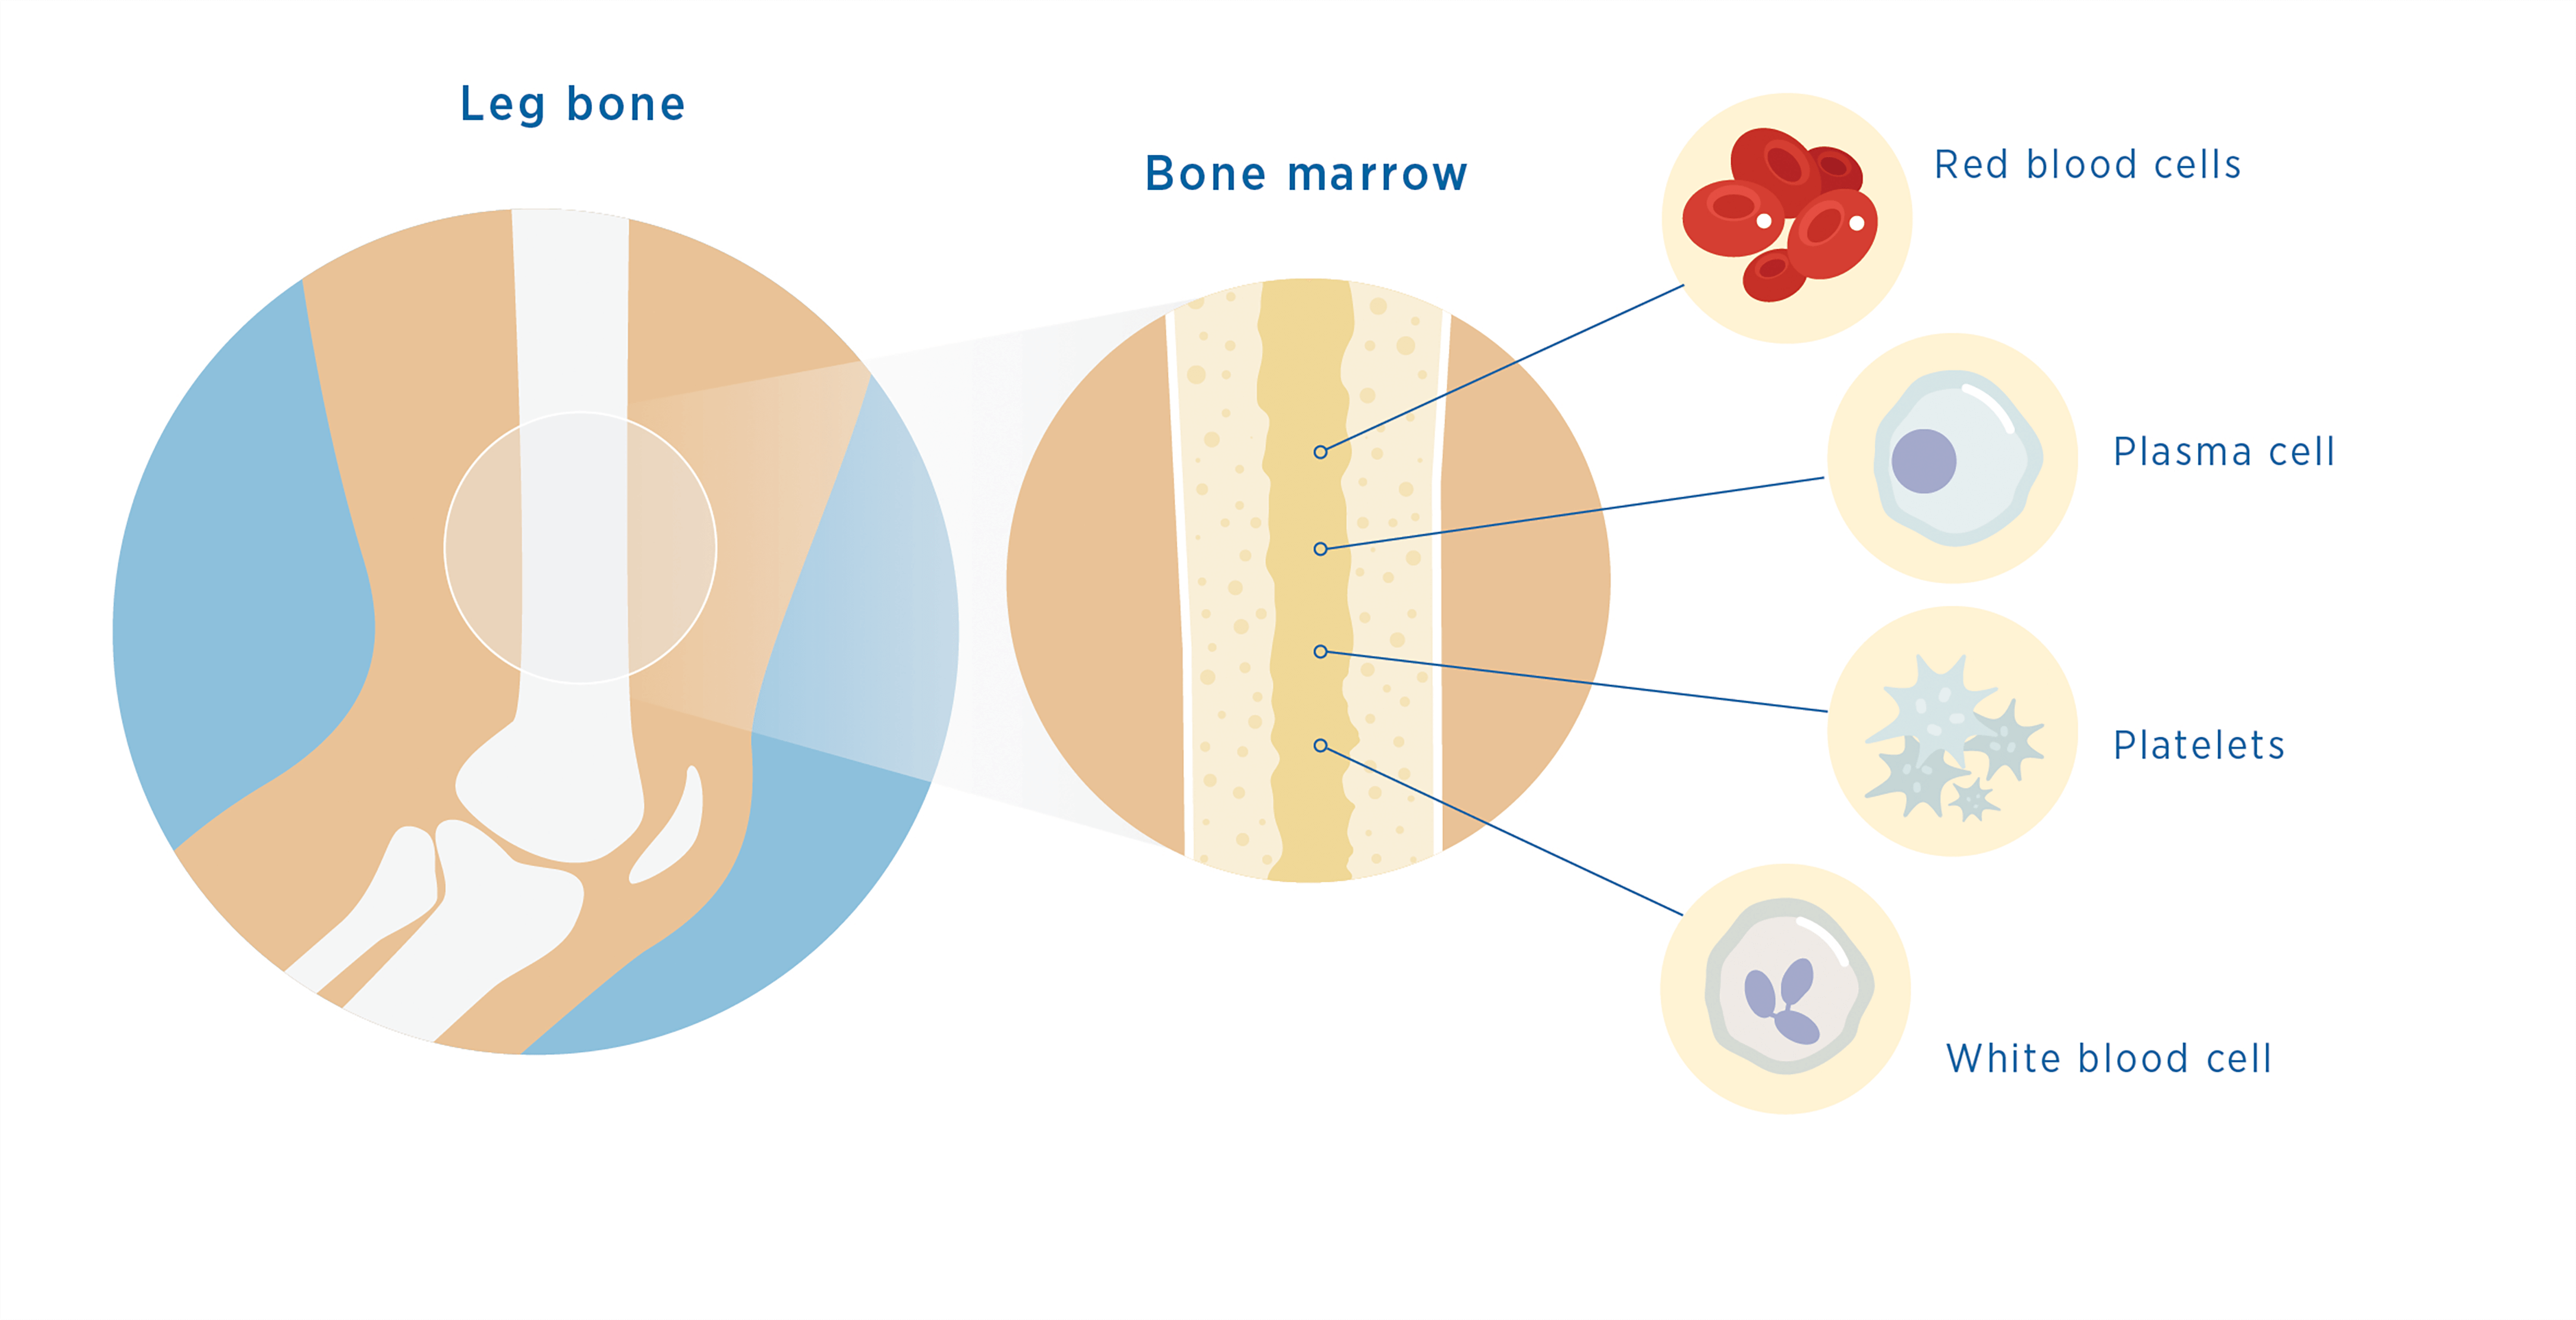 Diagram of bone marrow in the leg